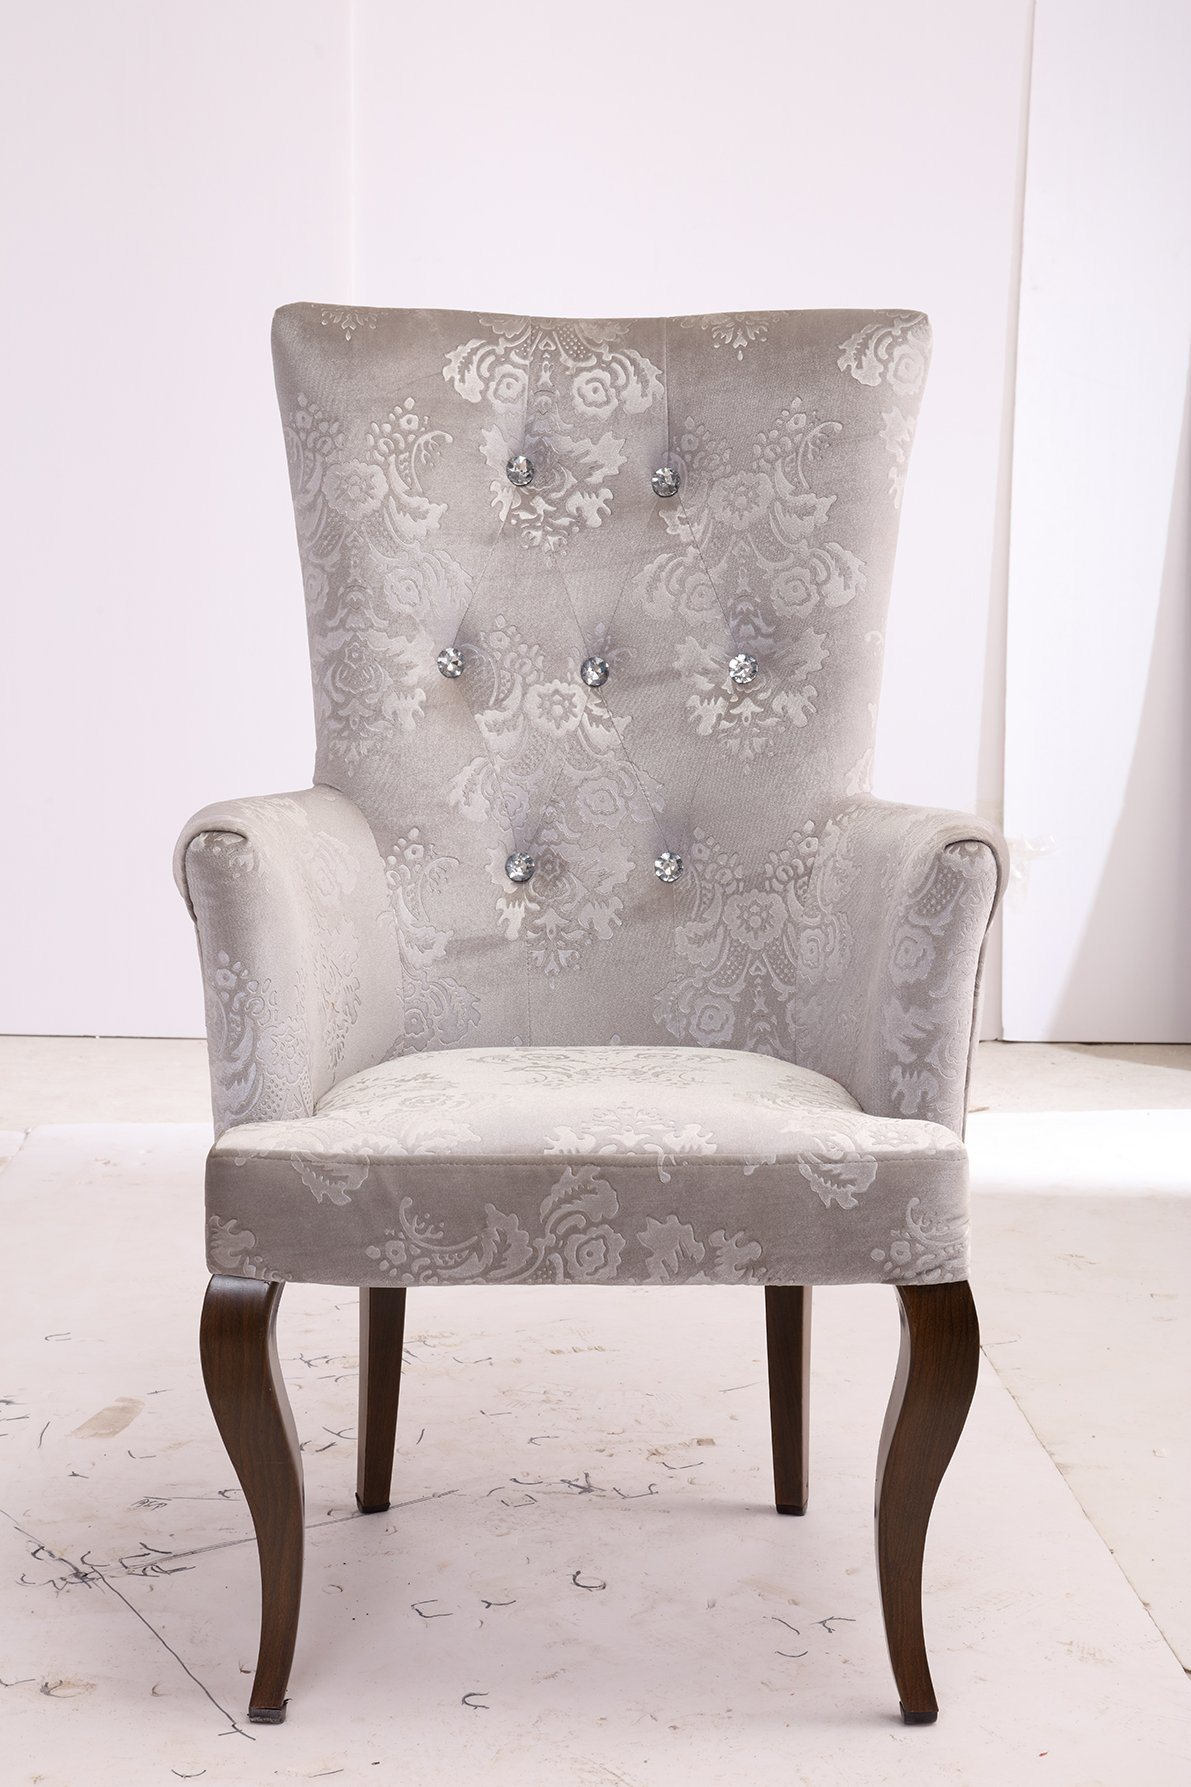 Sensational Hot Item High Quality European Style Ultra Size Steel Furniture White Royal Antique Metal Single Sofa Chair Pabps2019 Chair Design Images Pabps2019Com